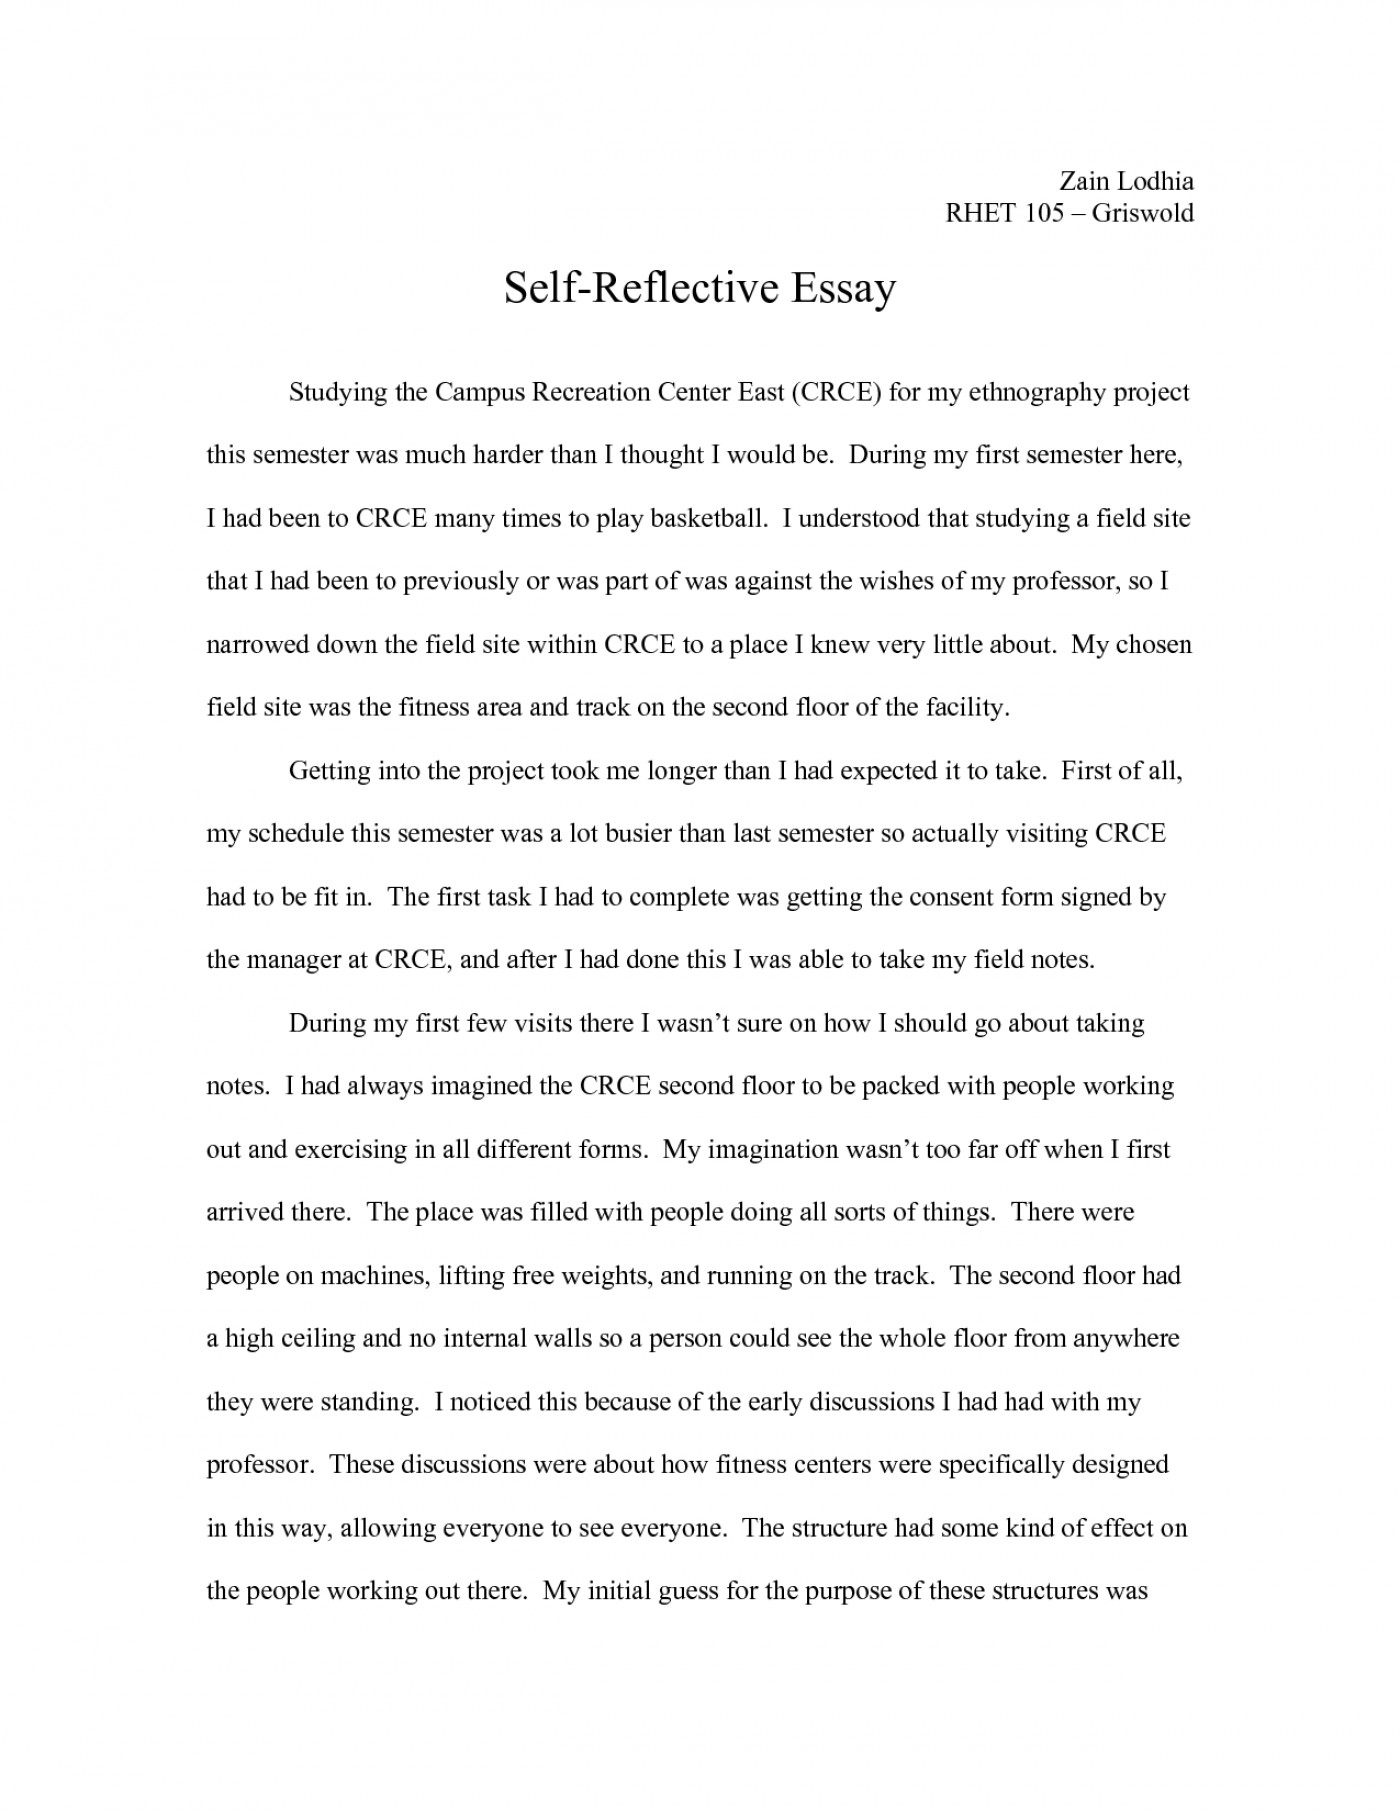 003 Qal0pwnf46 Reflective Essays Beautiful Essay Examples English Pdf For Middle School On Writing Class 1400